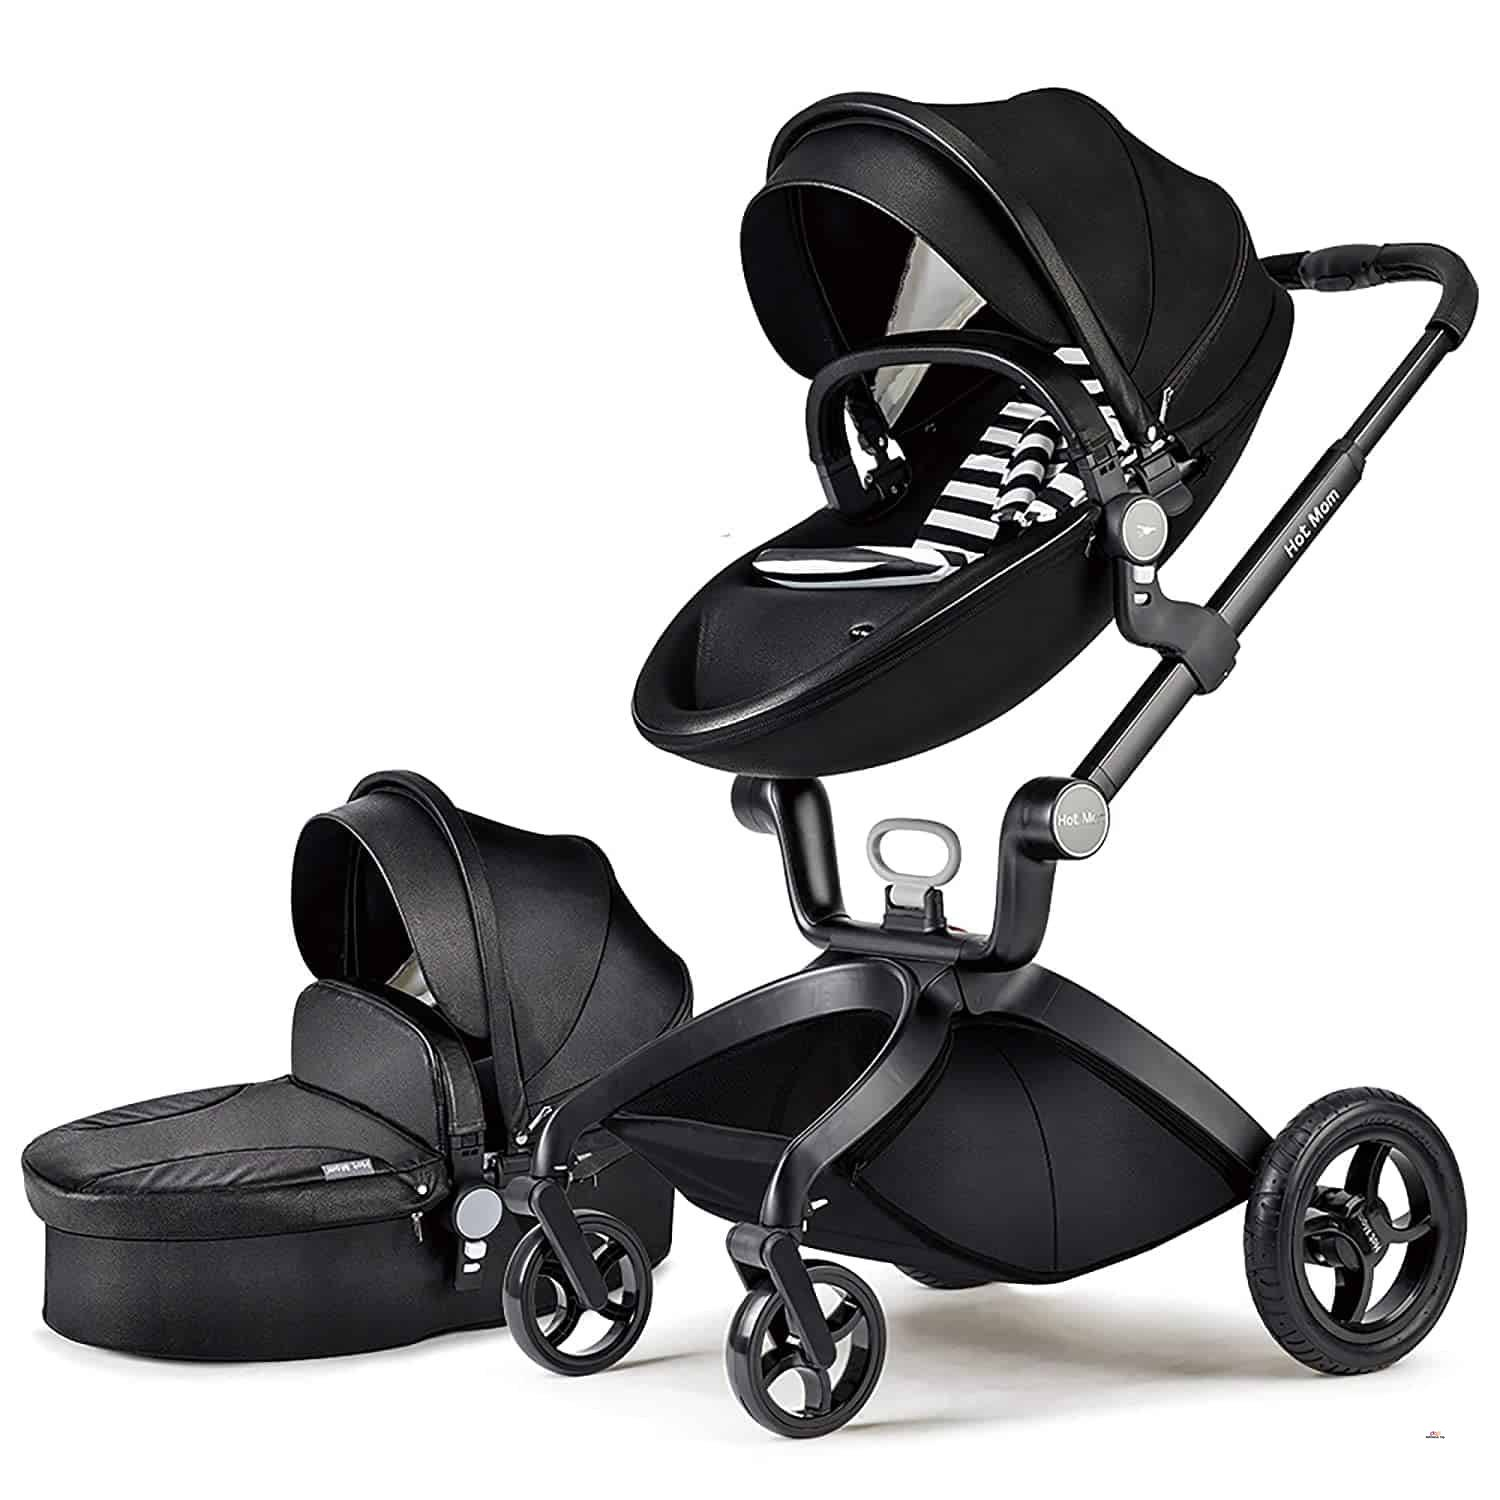 Small product image of Cynebaby Stroller Bassinet